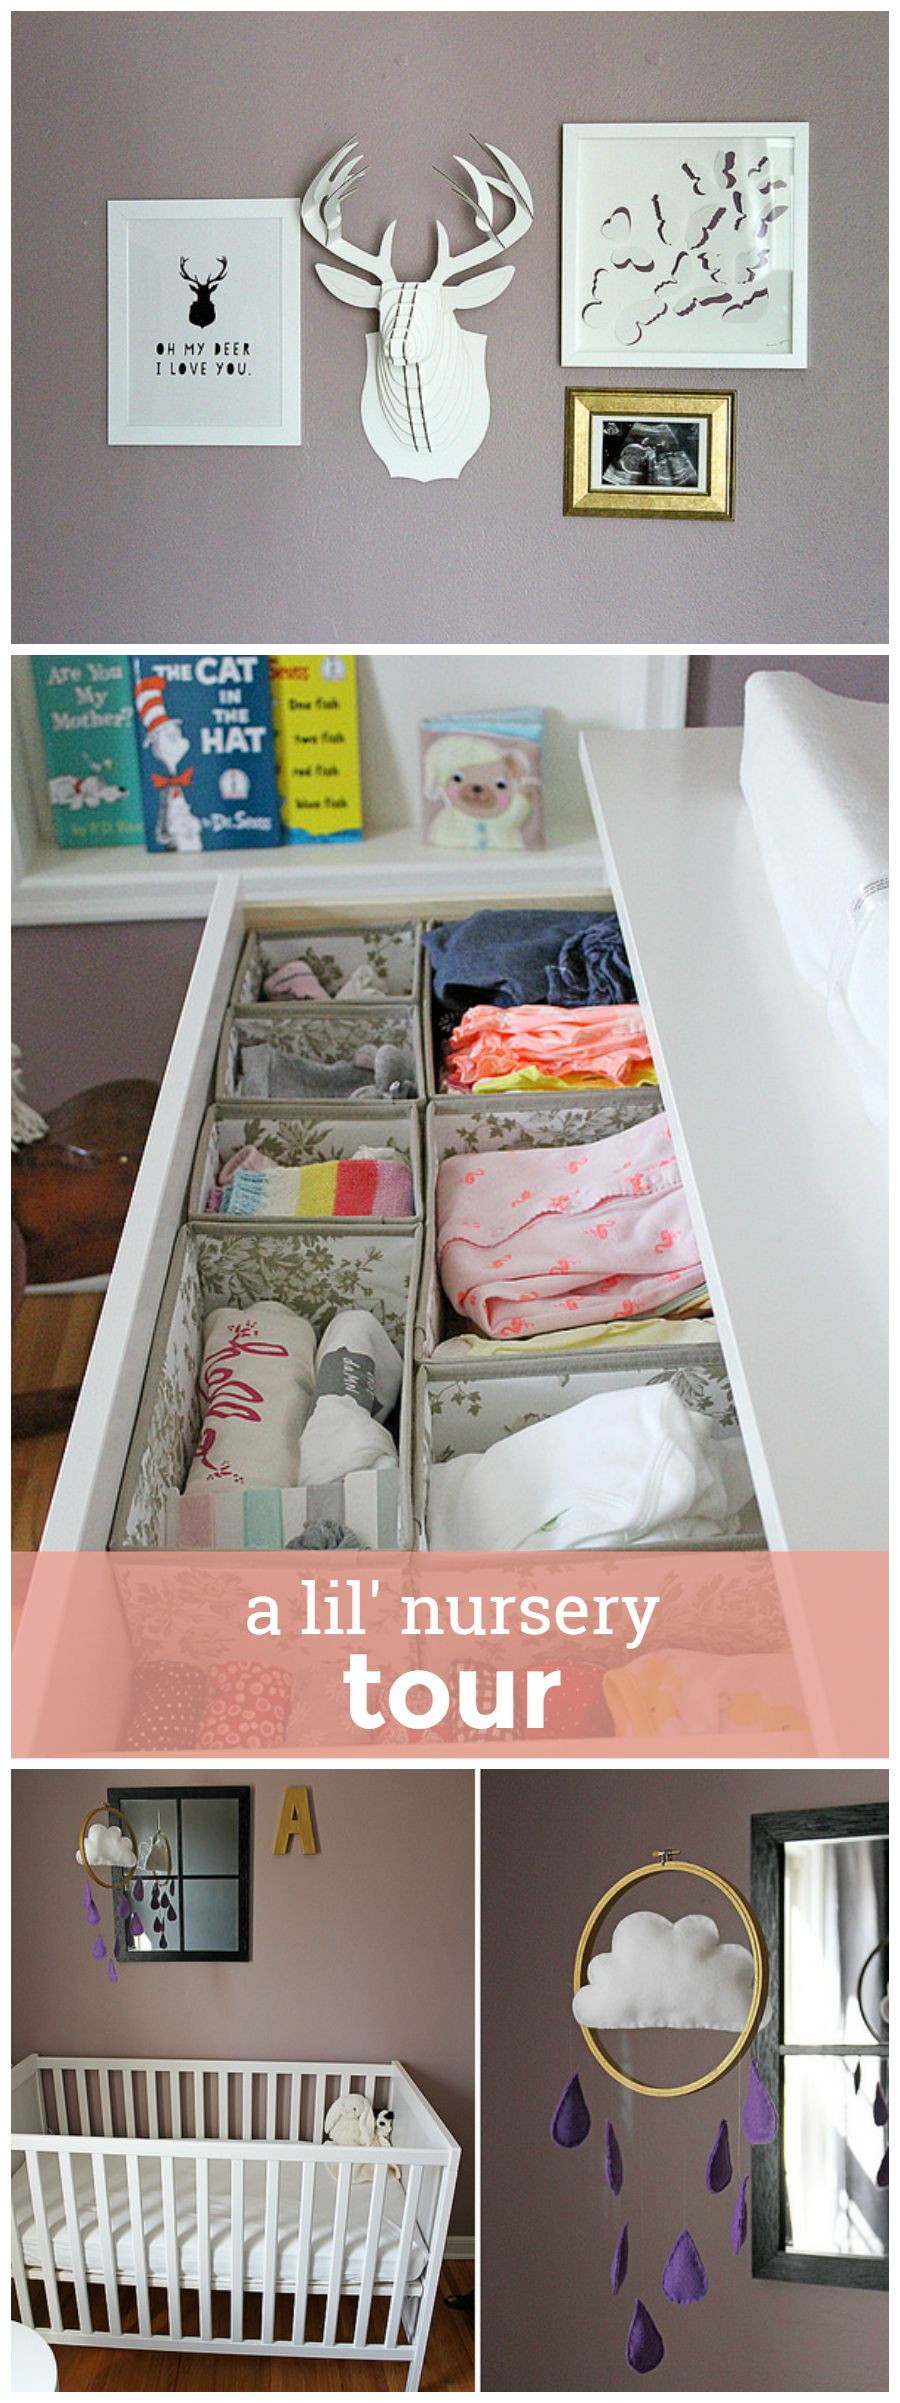 A Lil' Nursery Tour girlversusdough.com @girlversusdough